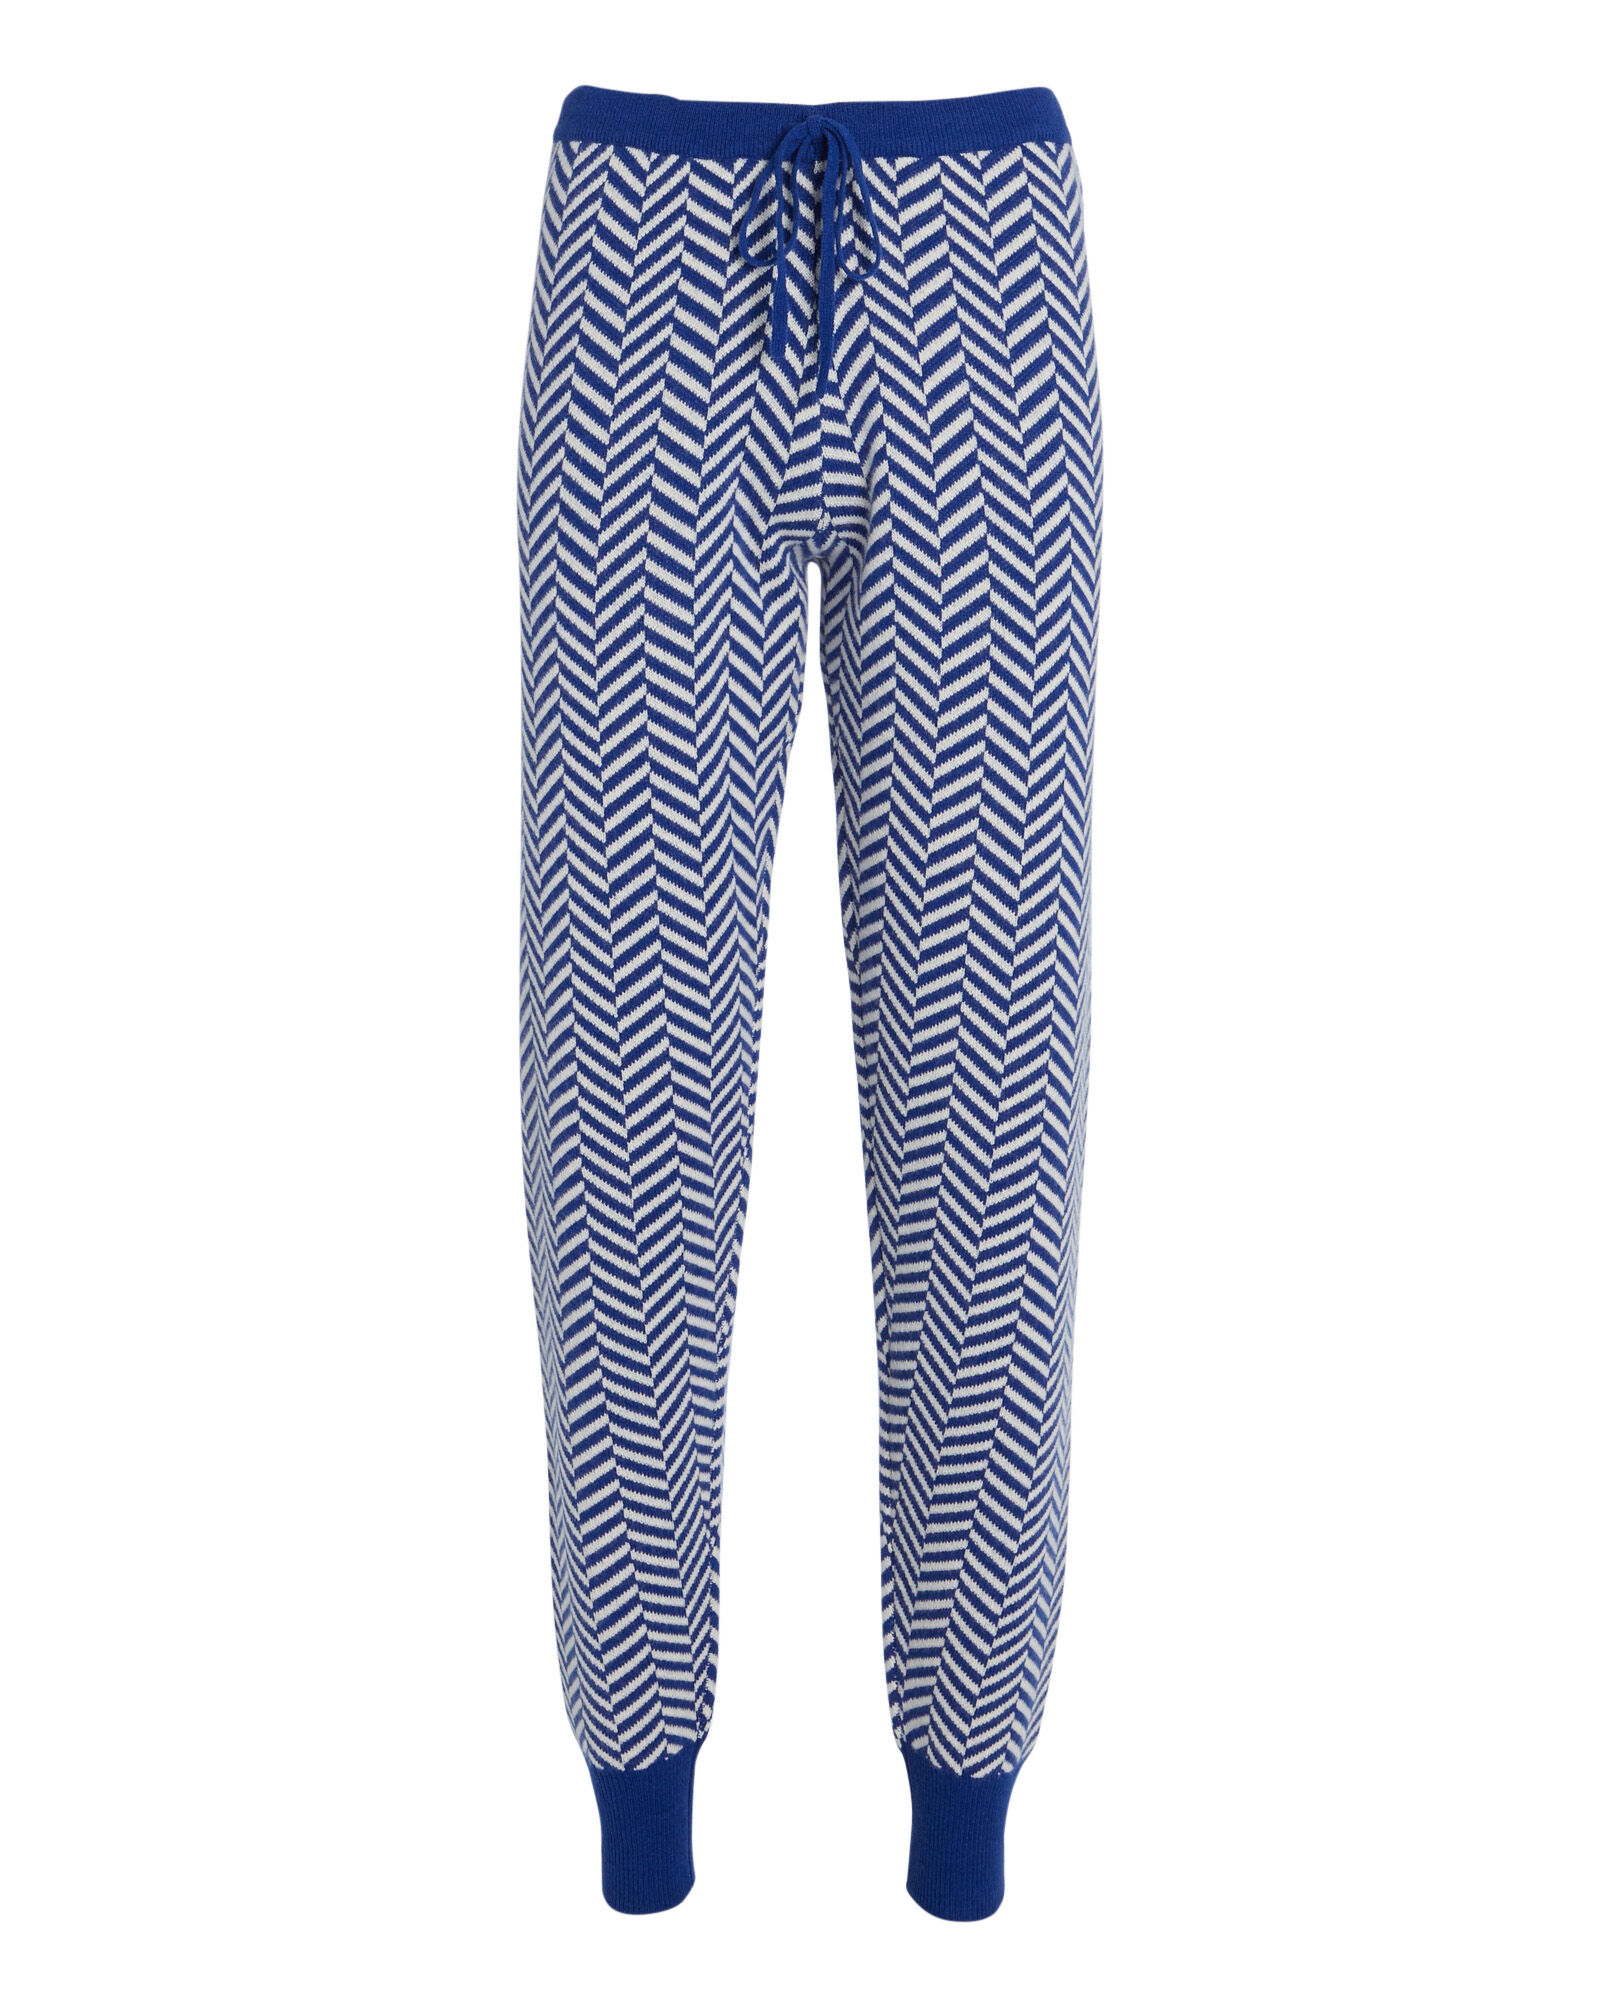 Poseidon Chevron Track Pants, BLUE/WHITE, hi-res